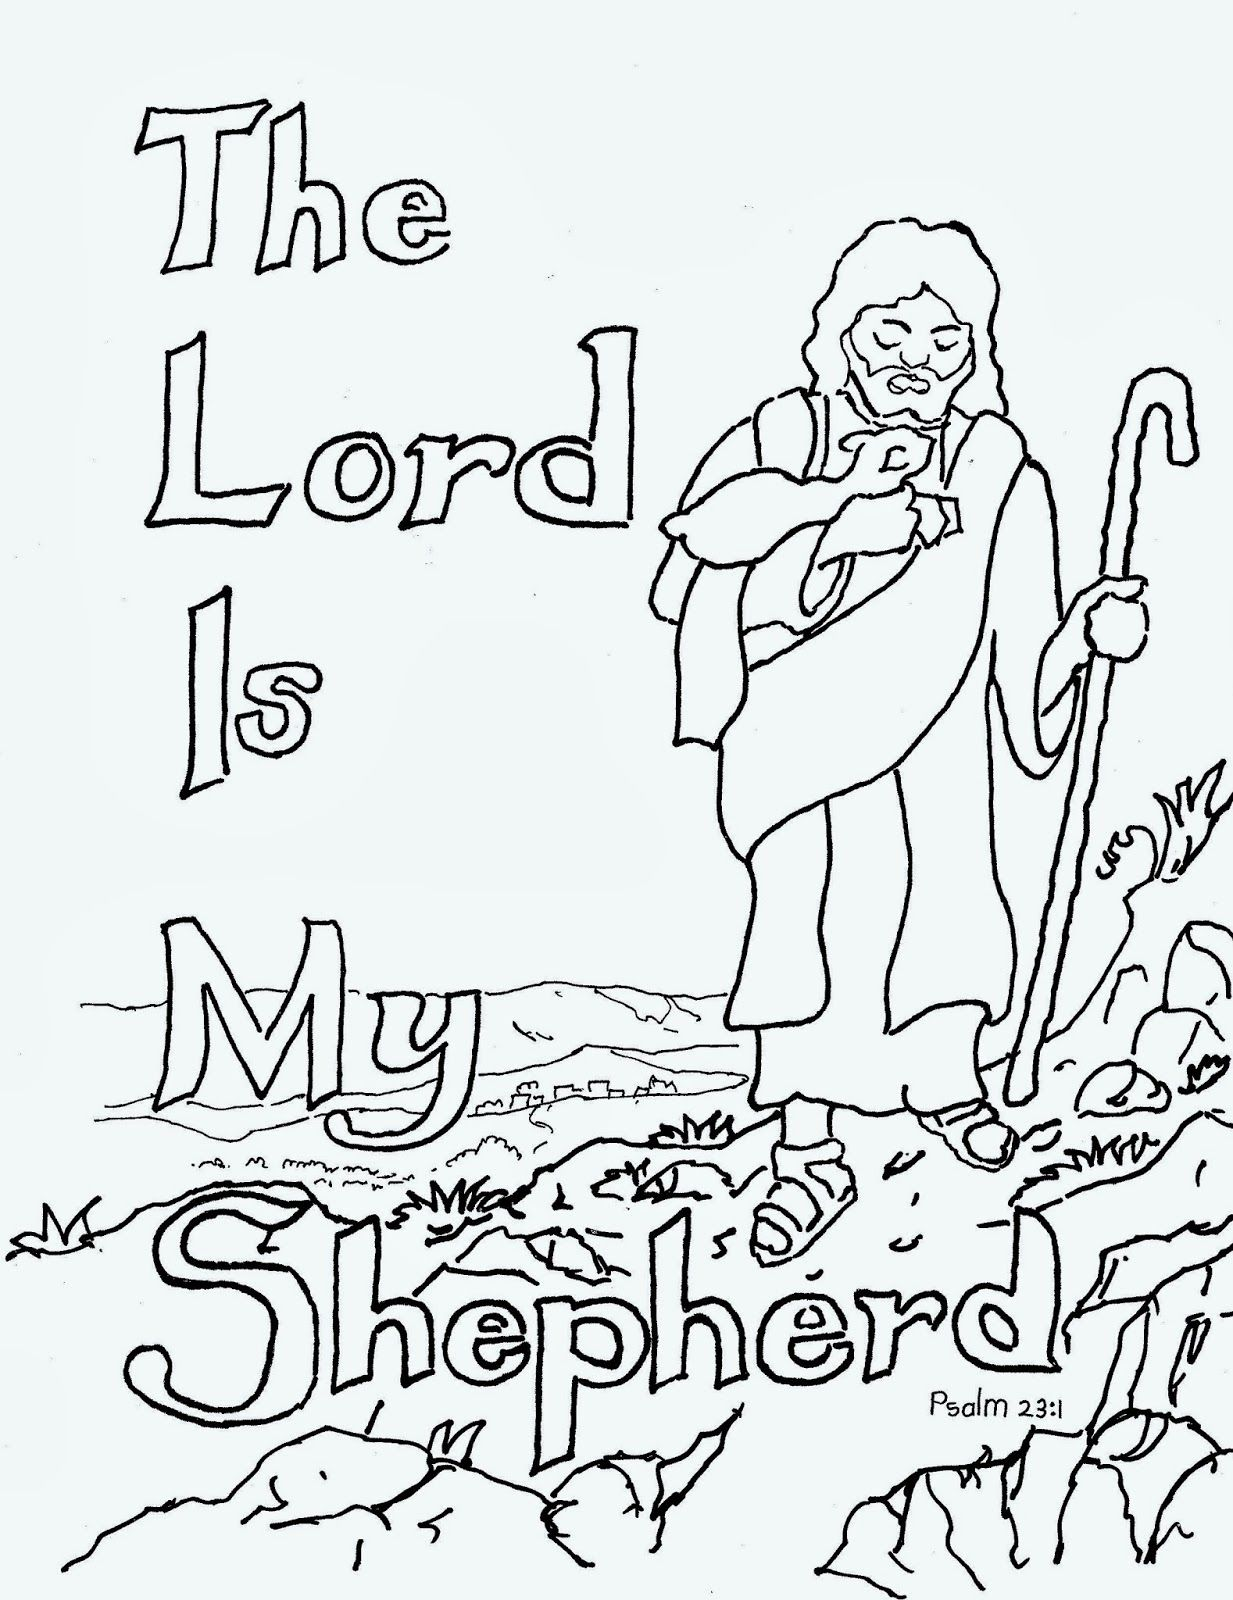 Free clipart 23rd psalm verse 3 coloring pages jpg transparent download The Lord Is My Shepherd Clip Art | The Lord Is My Shepherd Free Kids ... jpg transparent download